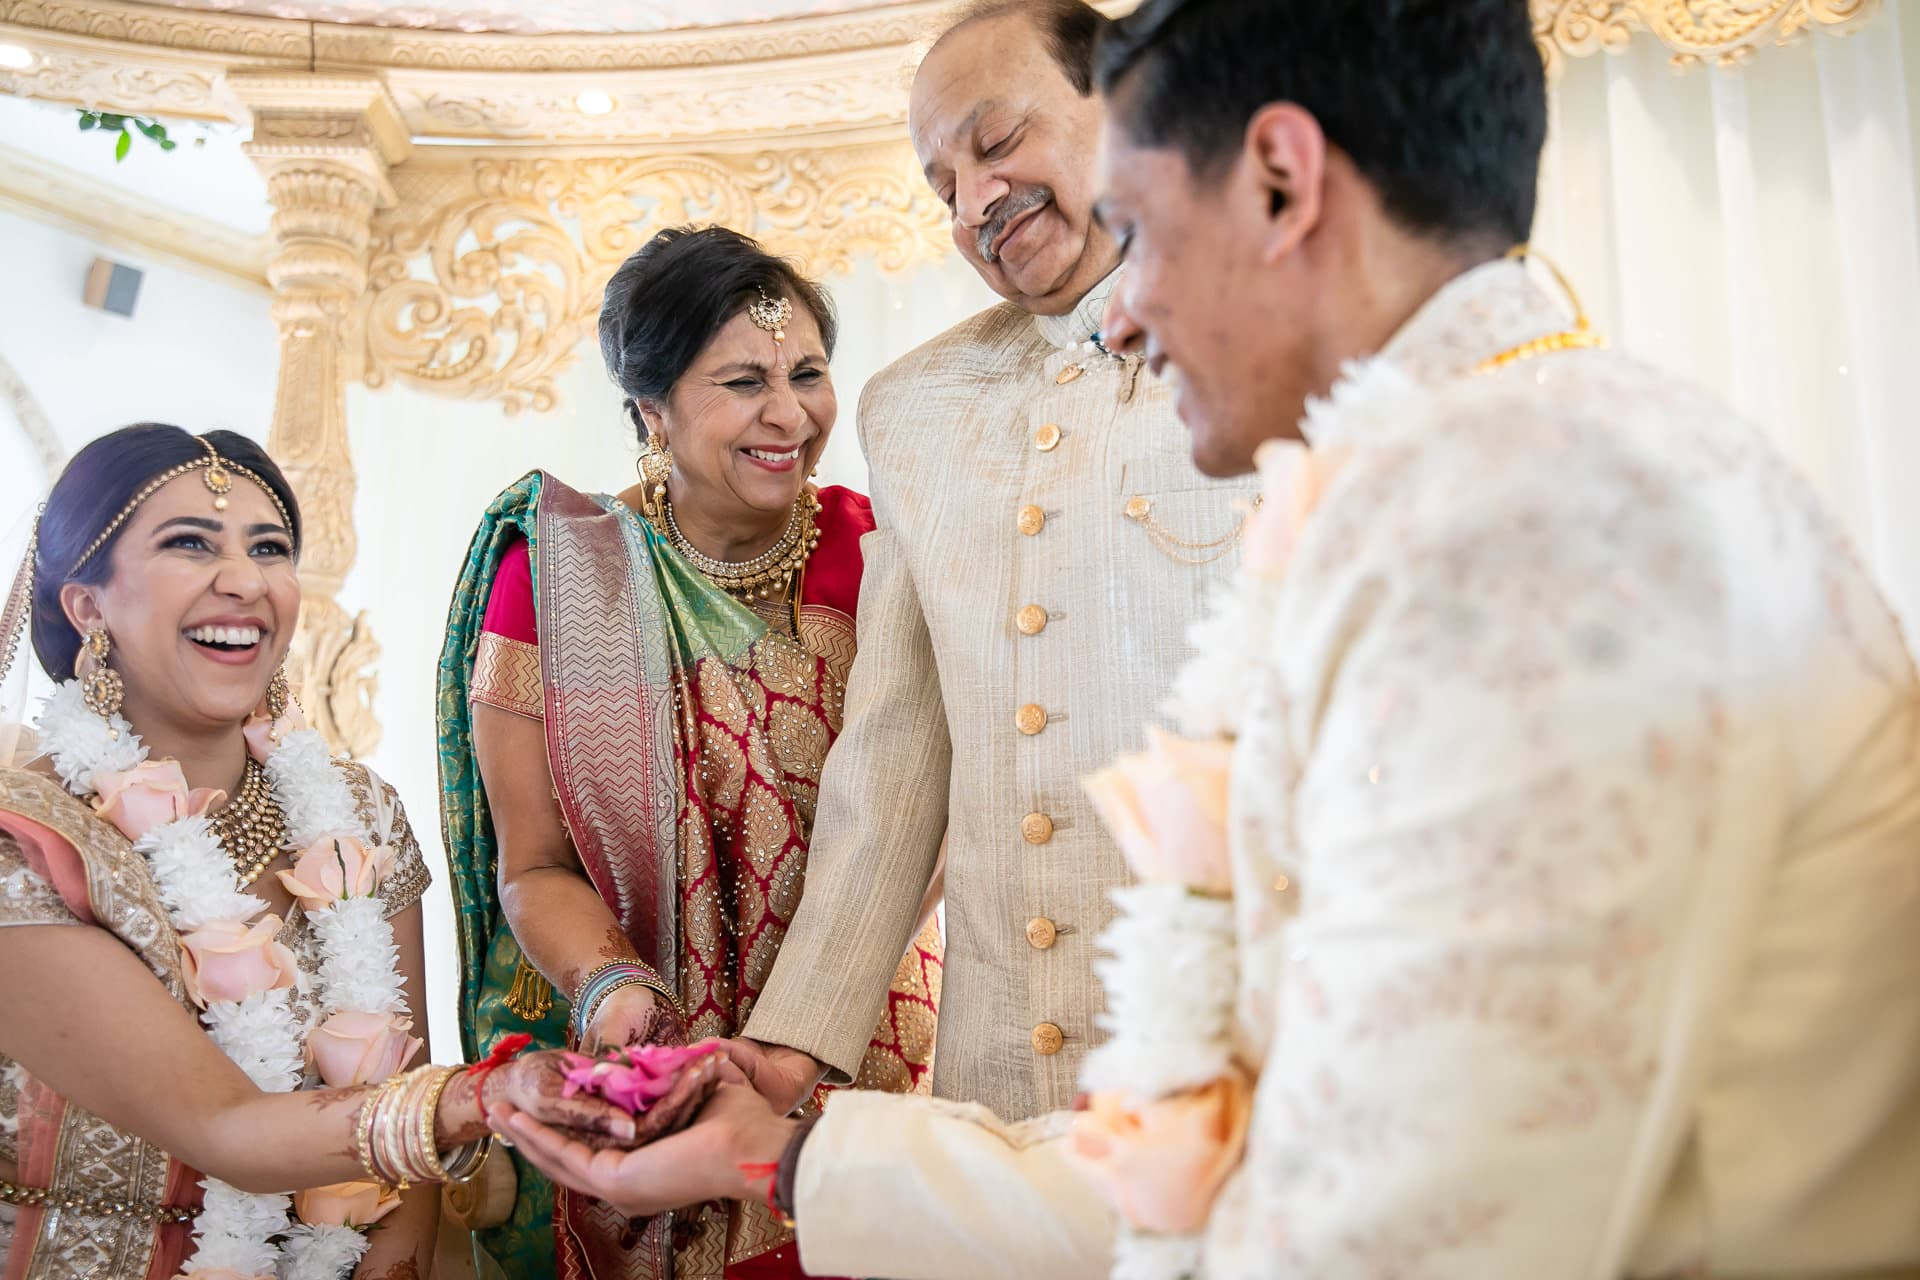 Parents of the bride giving bride's hand away in marriage